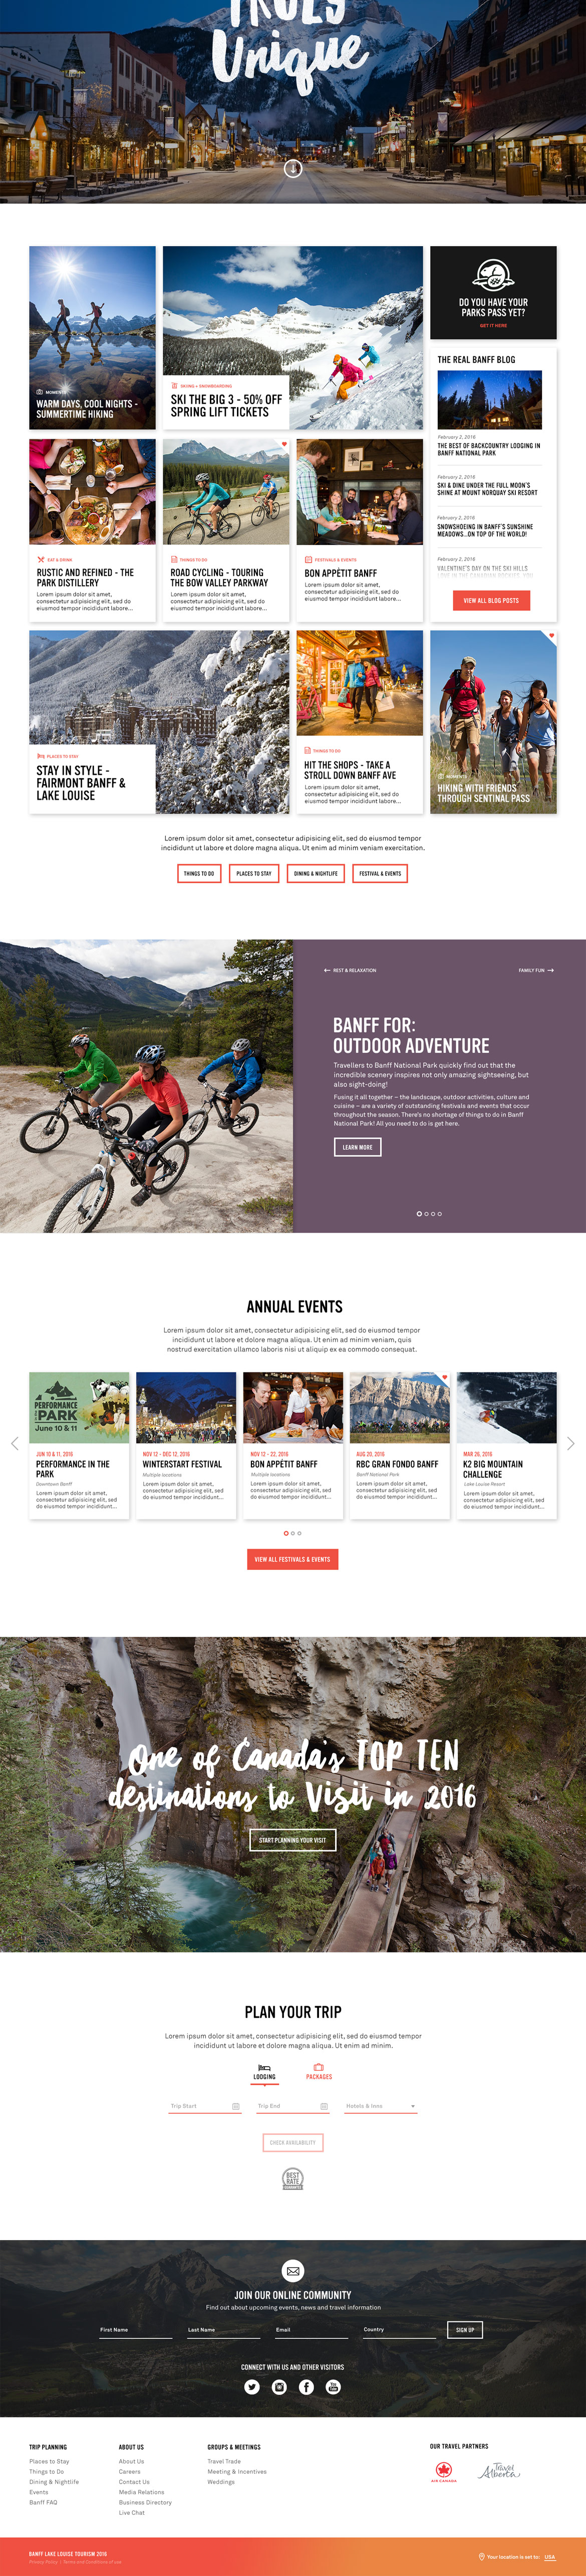 banff_homepage_main